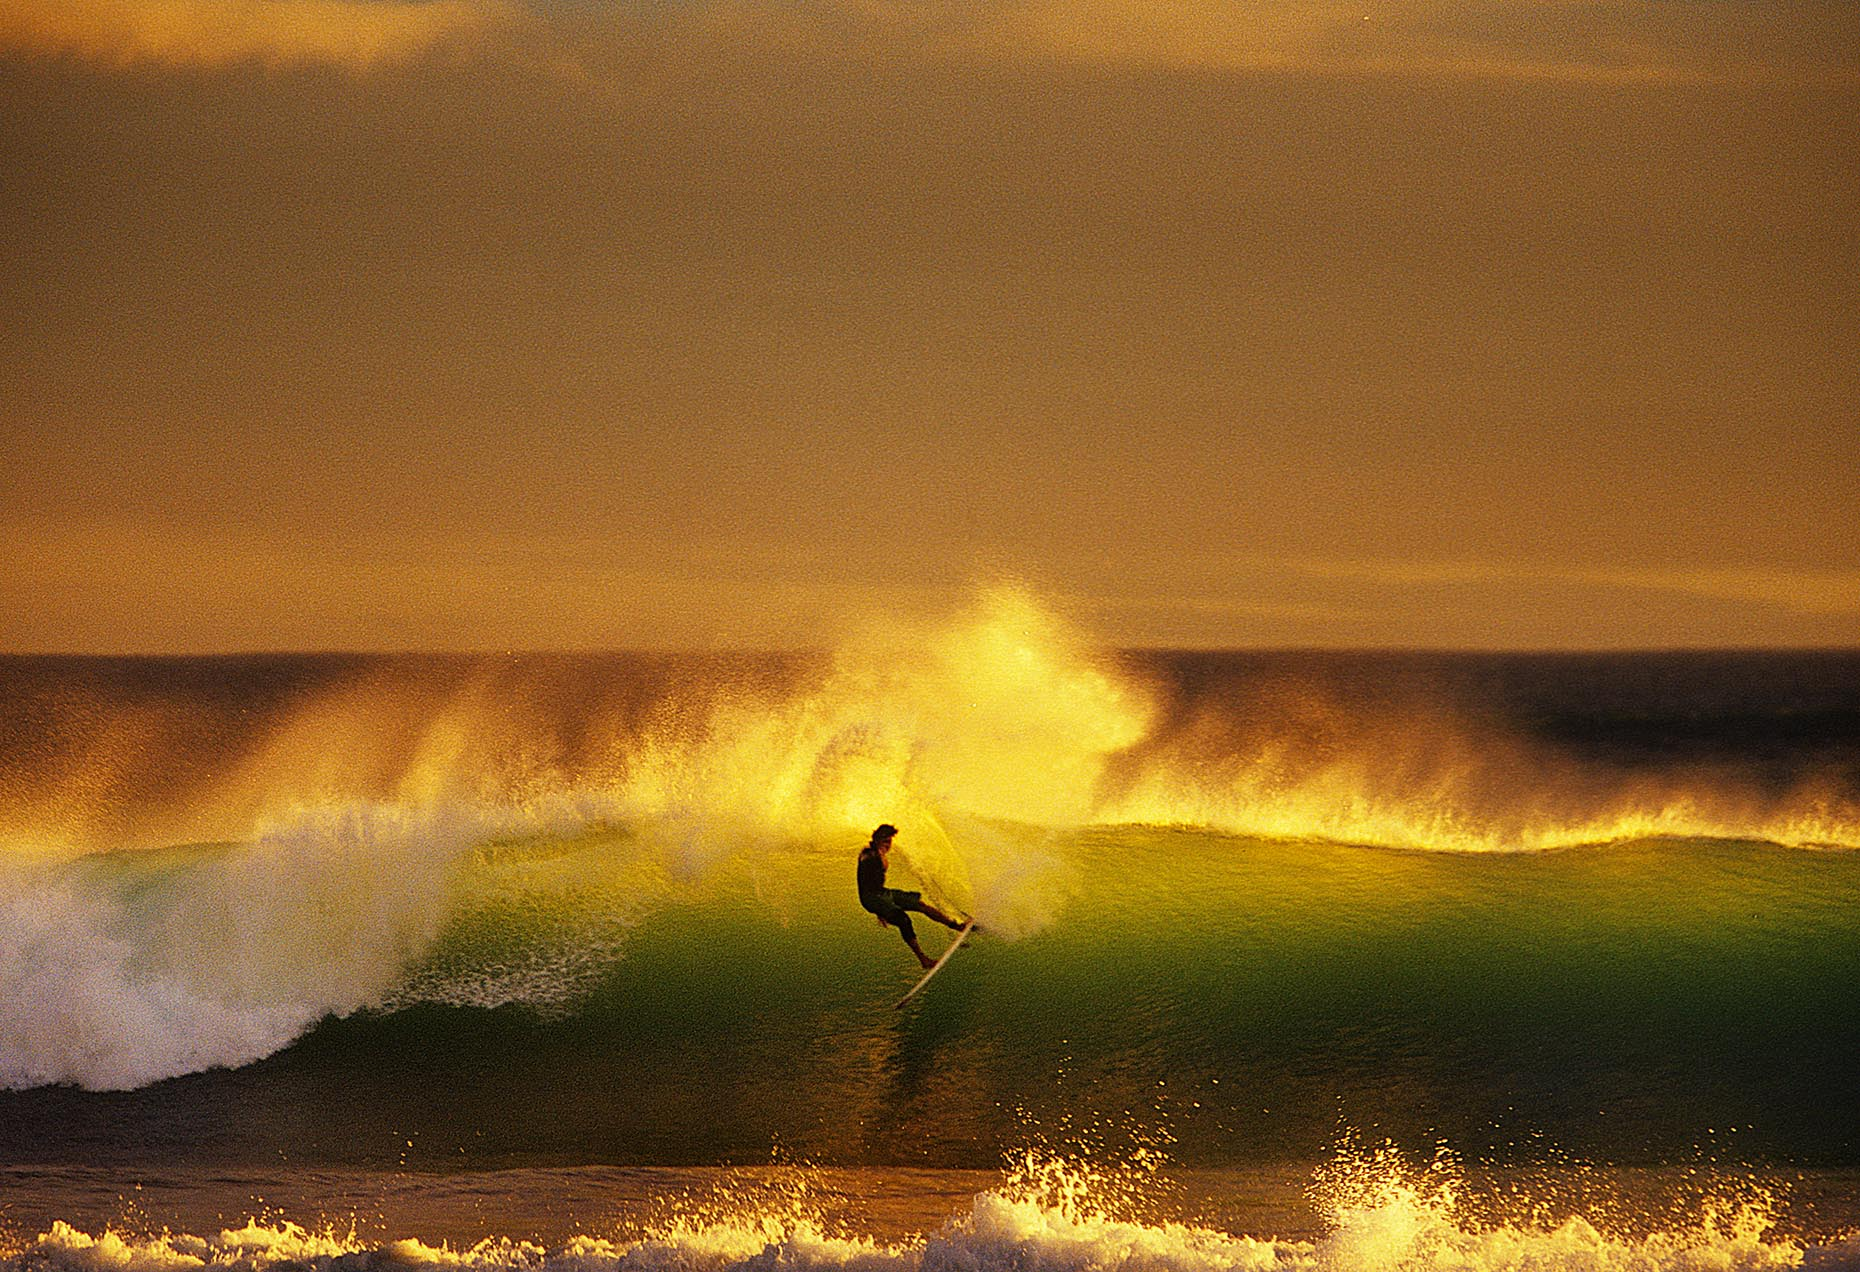 Surfing New Zealand by Boston based commercial sports photographer Brian Nevins